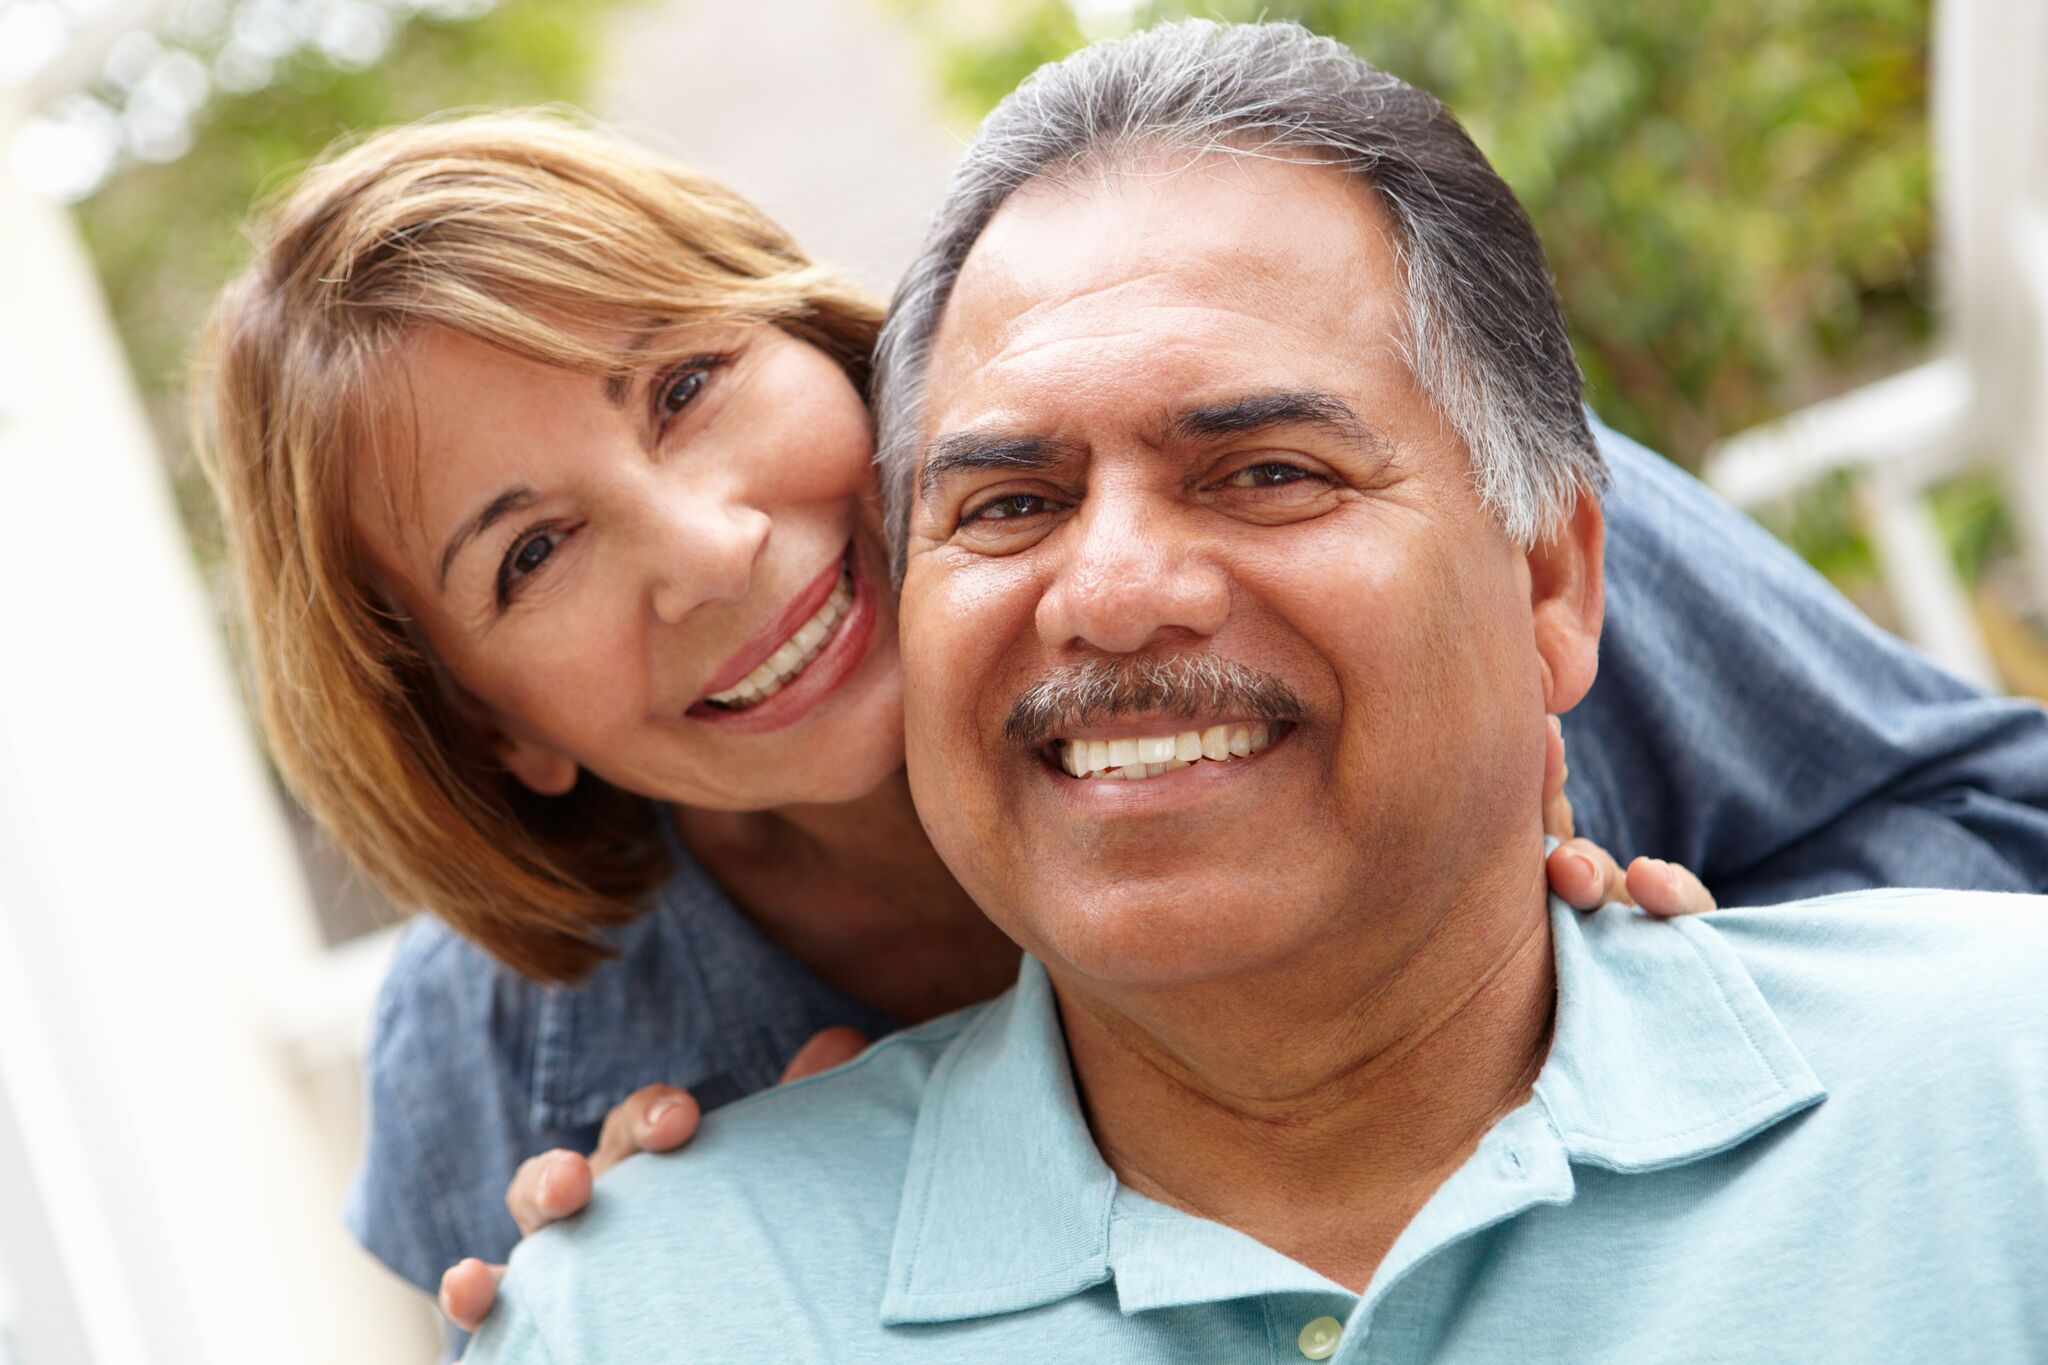 Dentist in Cambridge | Don't Miss Your Screening